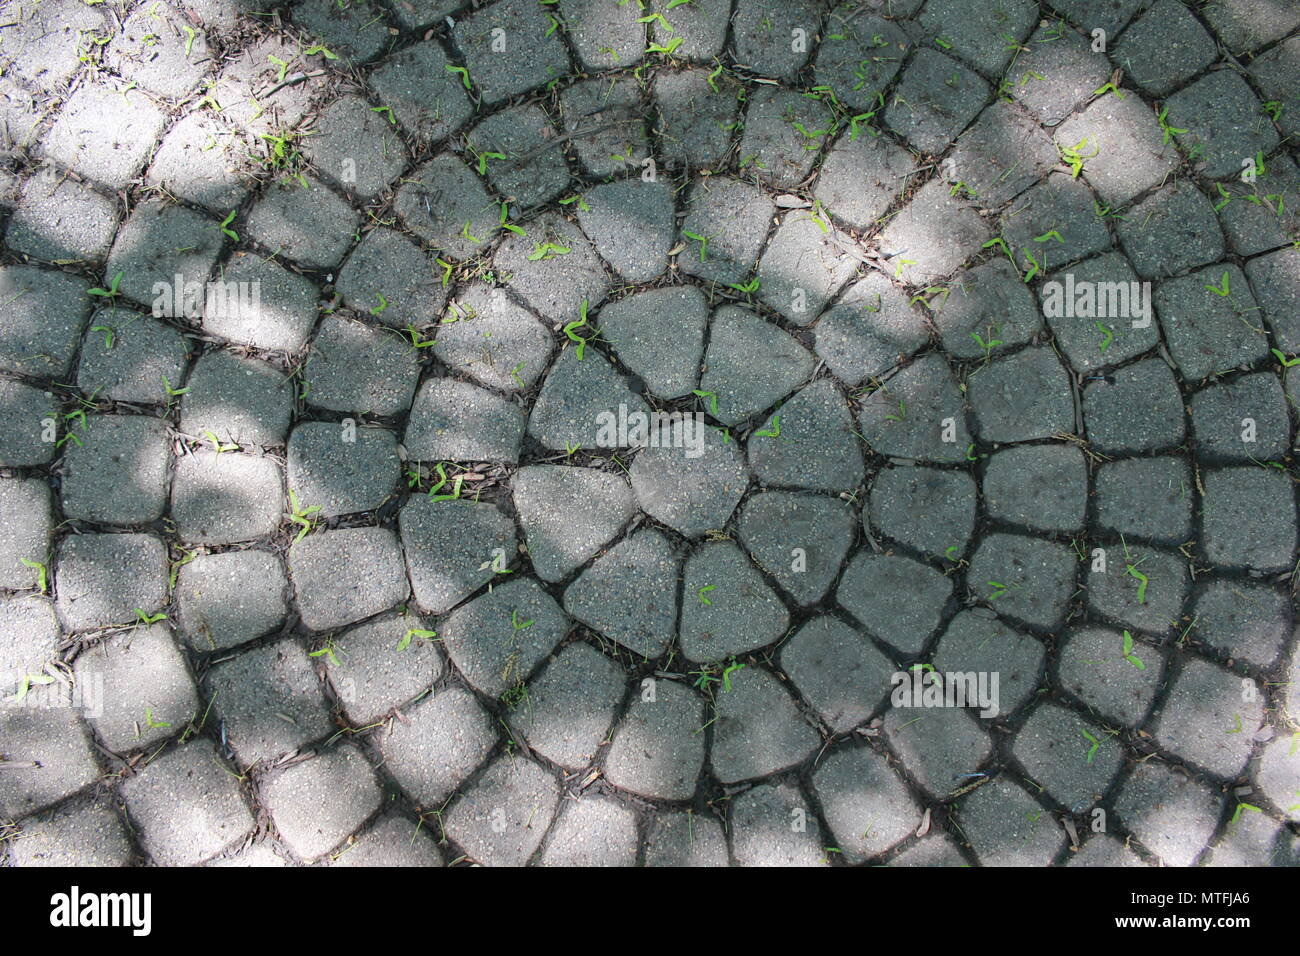 Ring of professionally landscaped masonry blocks radiating from the center of the design. - Stock Image